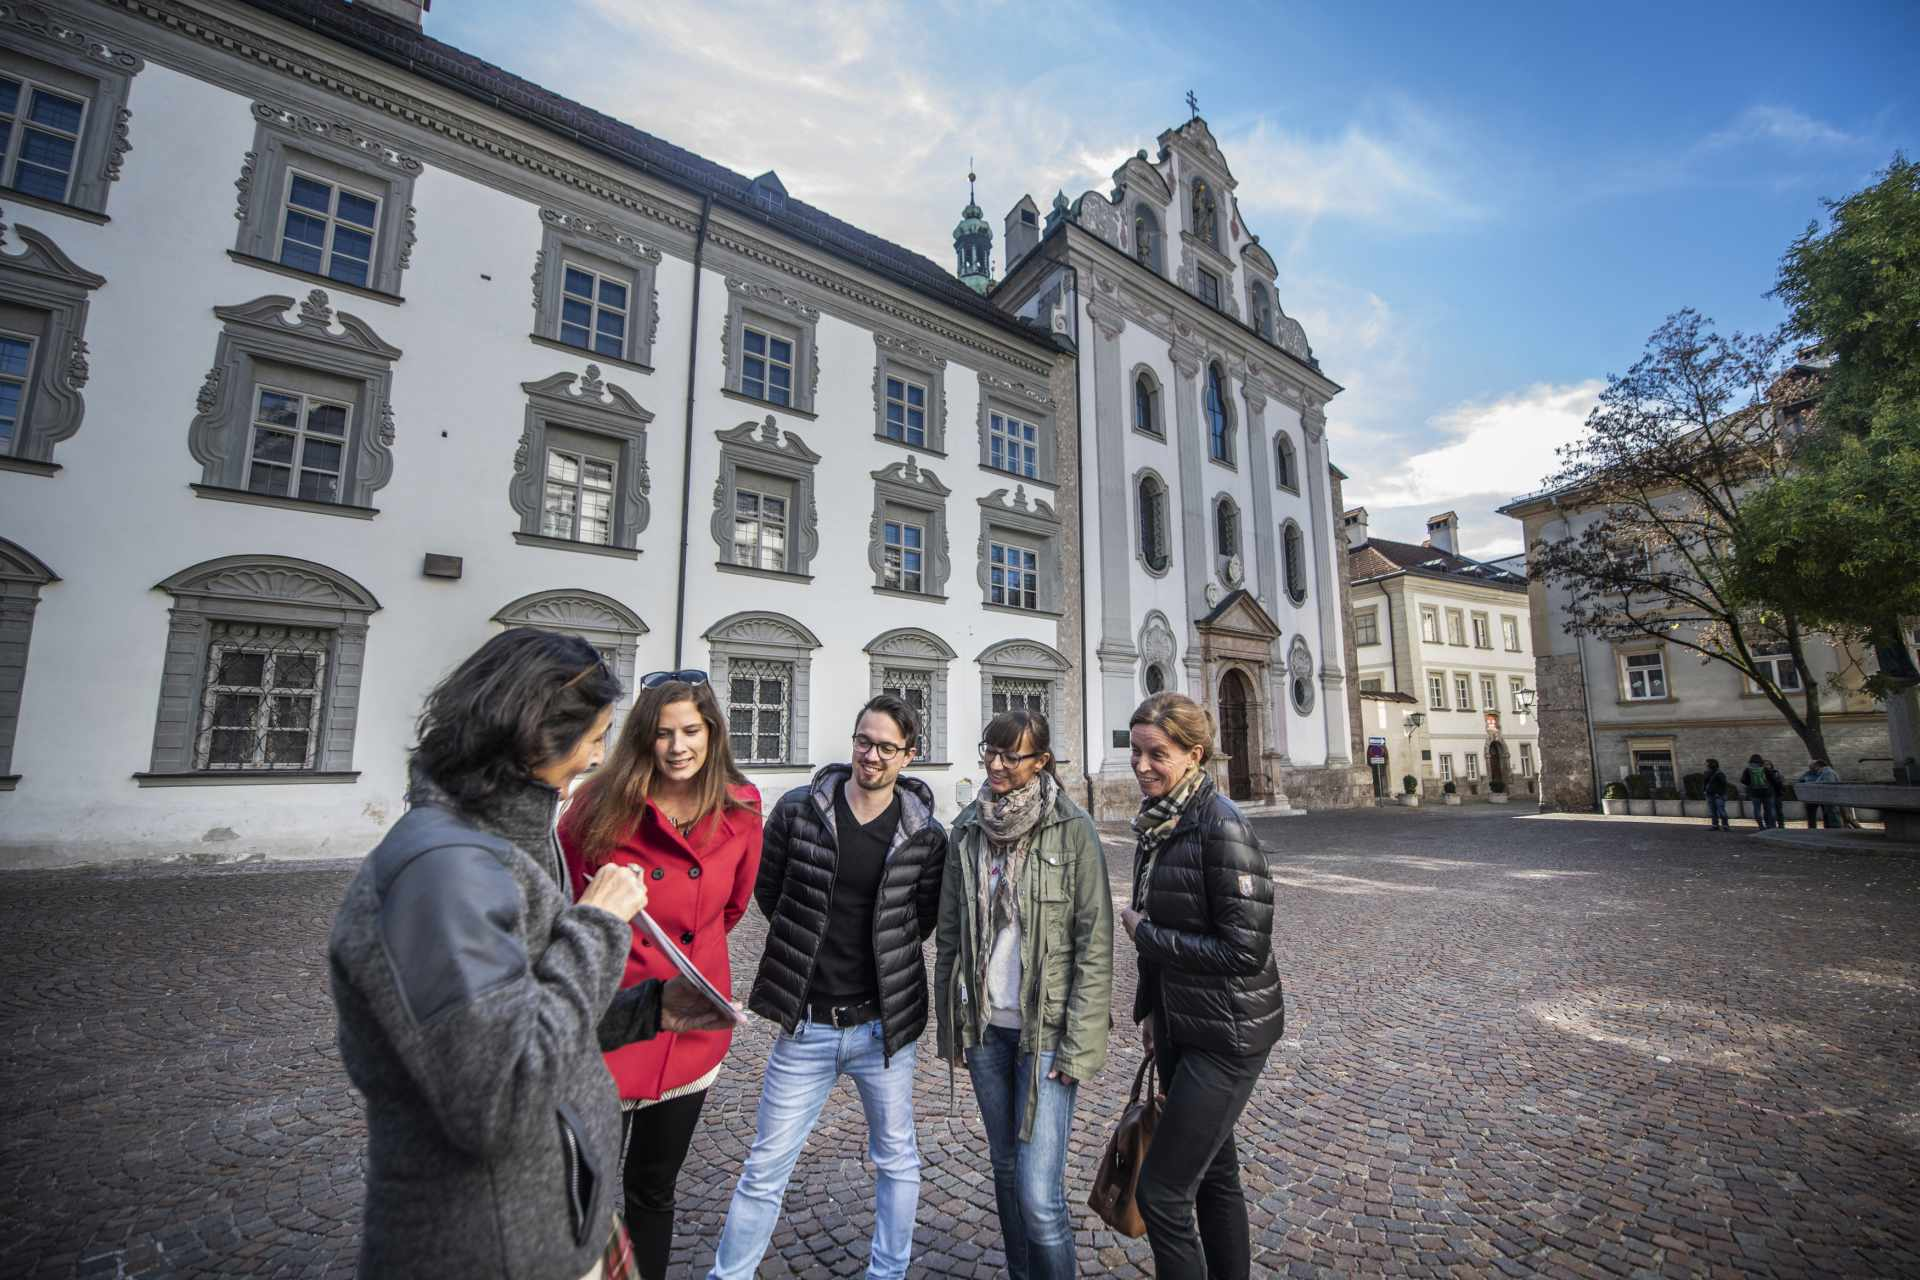 Guided City Tour Hall - Adventure with myZillertal.app